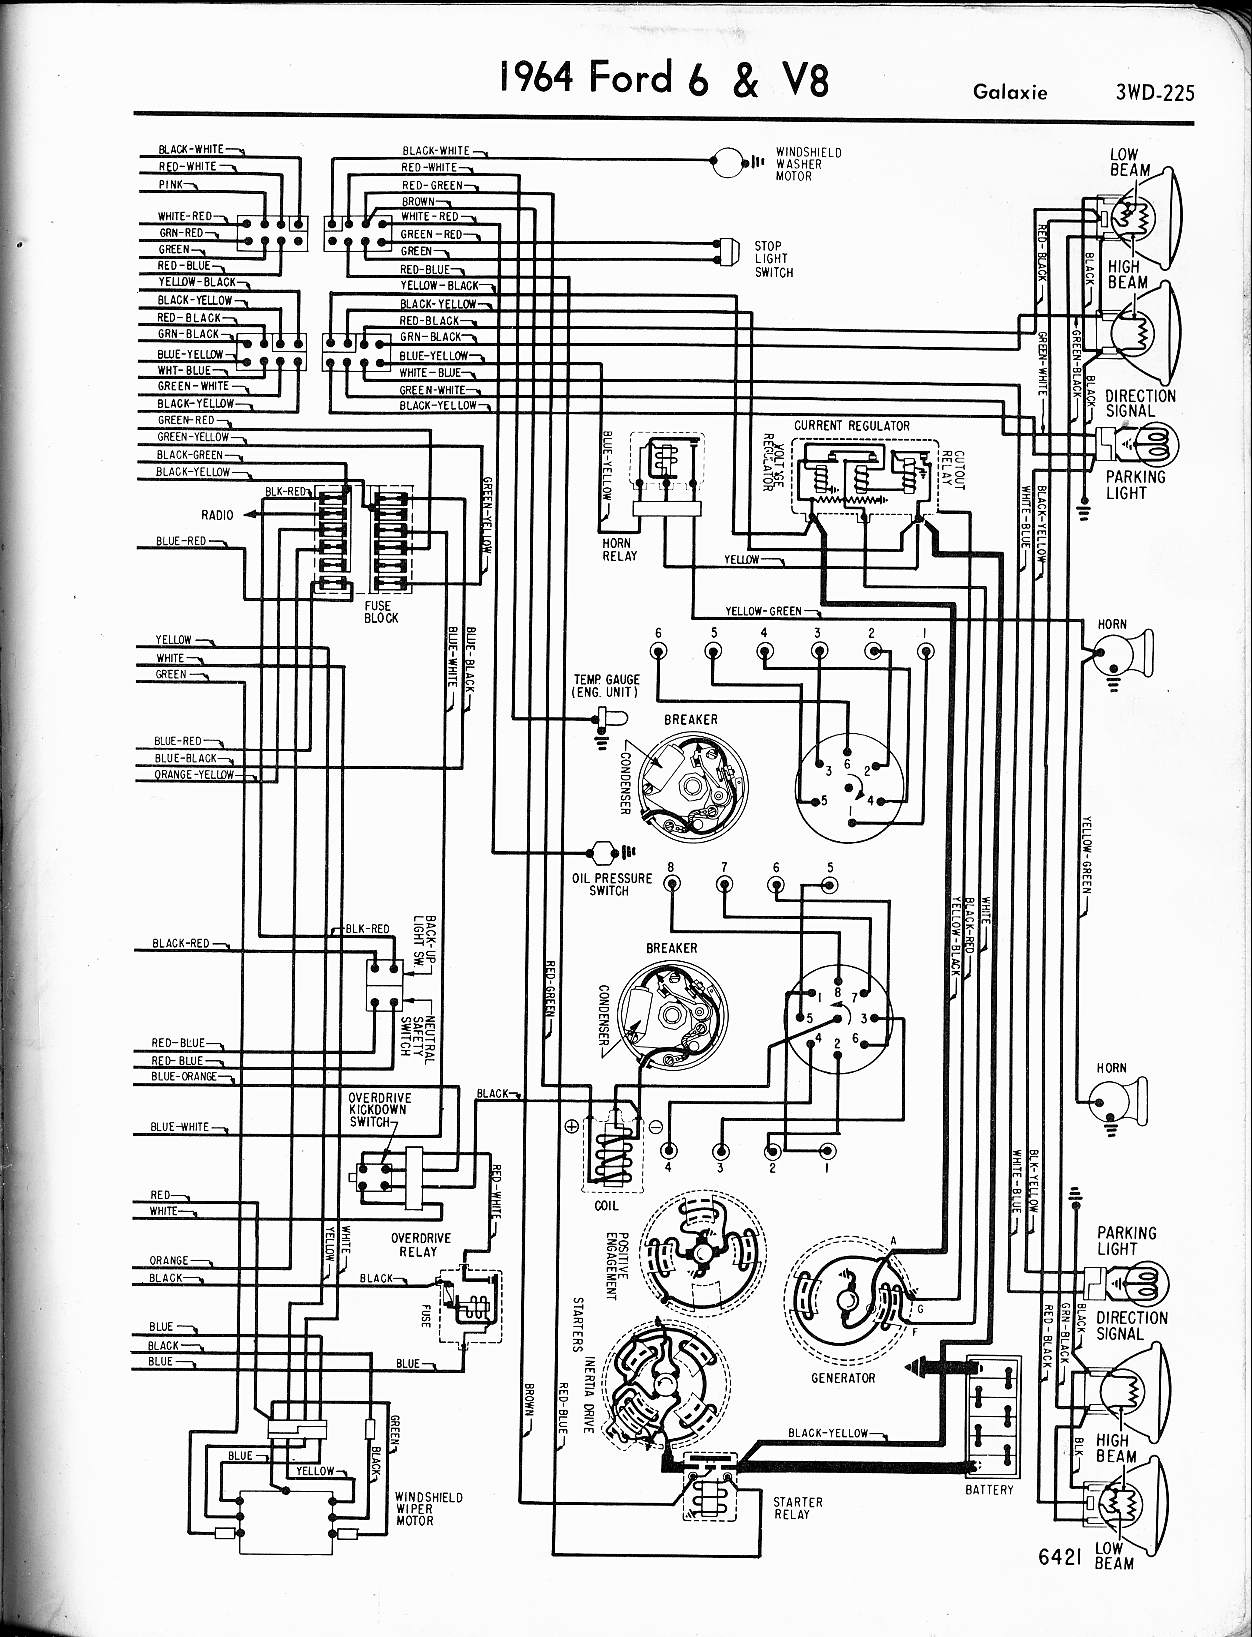 Ford Econoline Wiring Diagrams